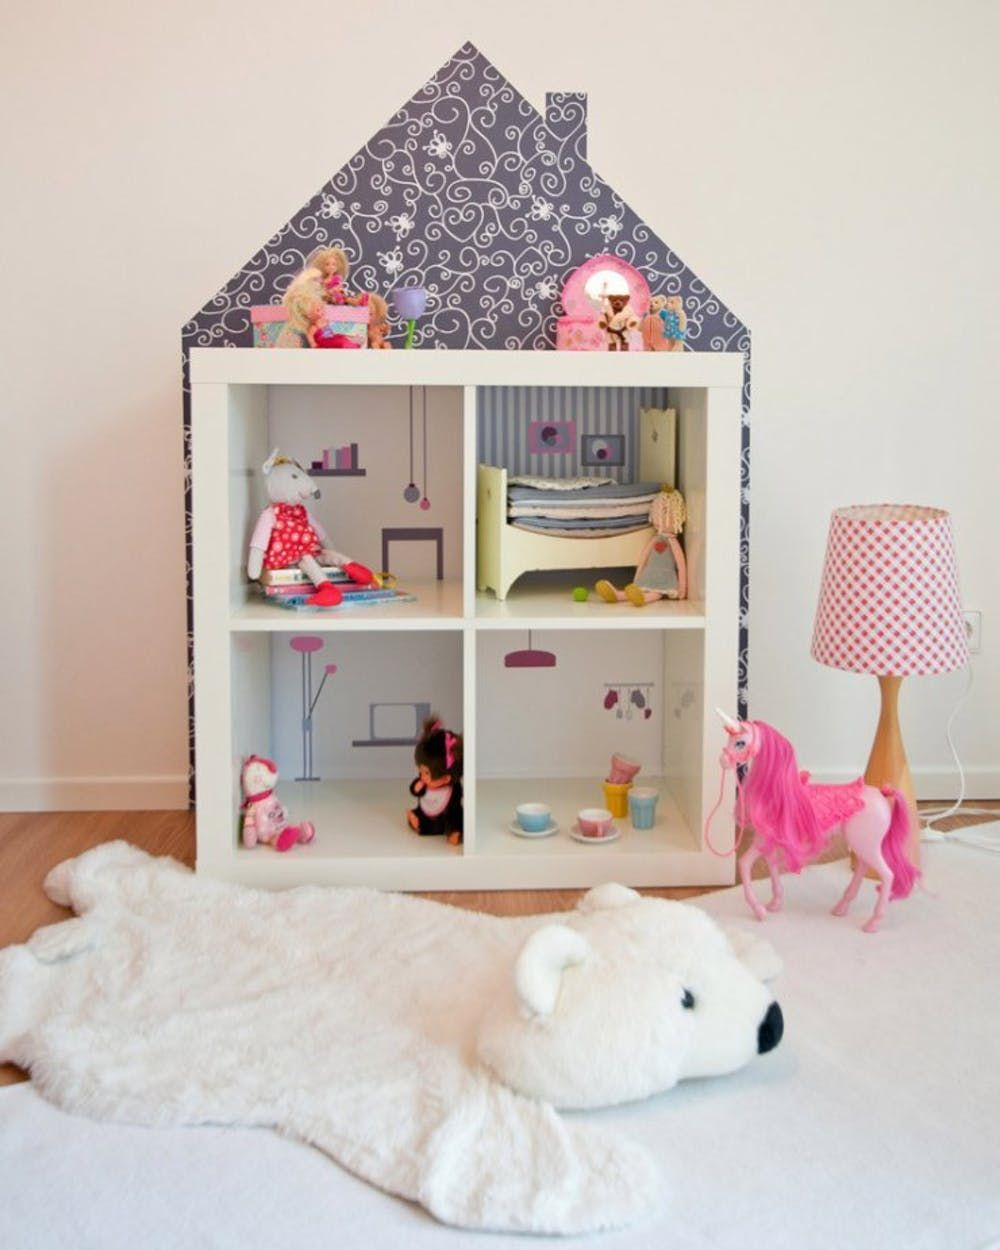 Diy Bookshelf Doll House Design Pinterest Ikea Ikea Hack Und